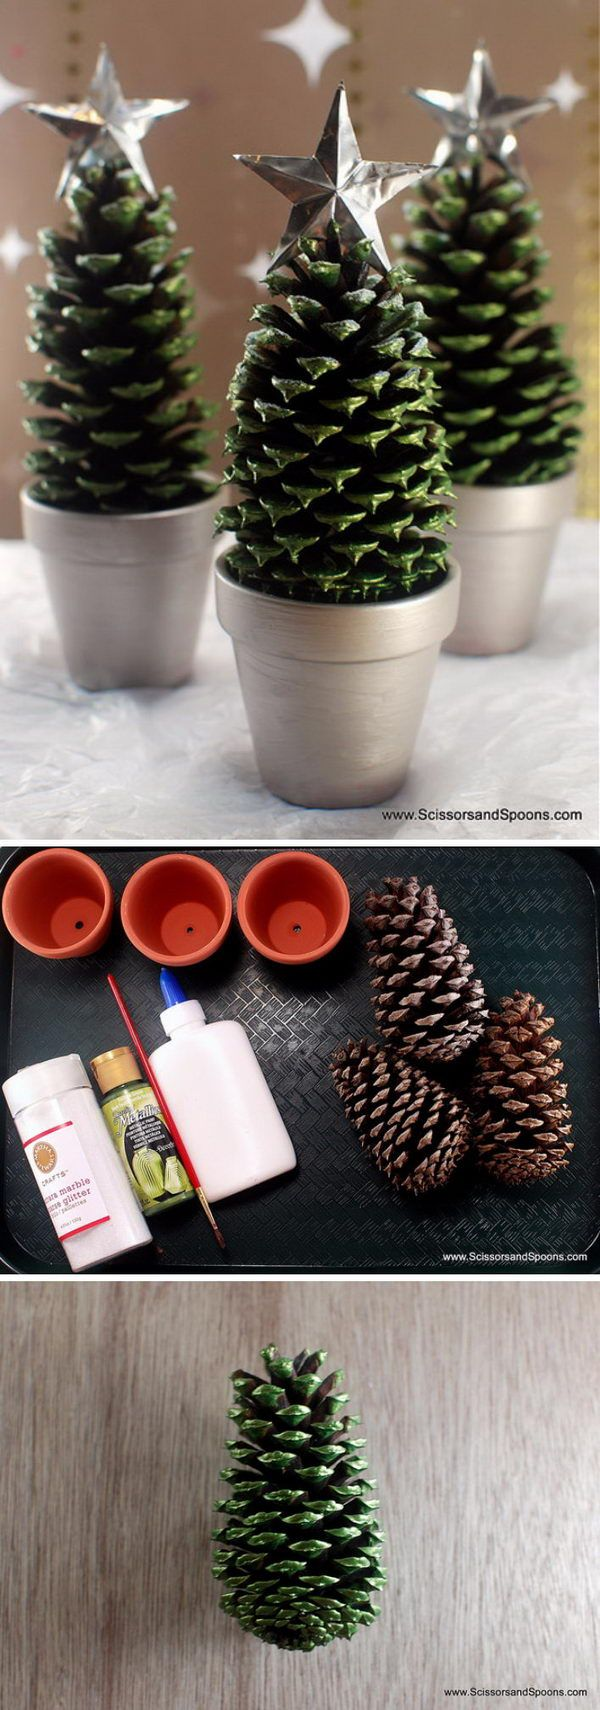 Best 25 Pine Cone Christmas Tree Ideas On Pinterest Christmas  - Pine Cone Christmas Trees